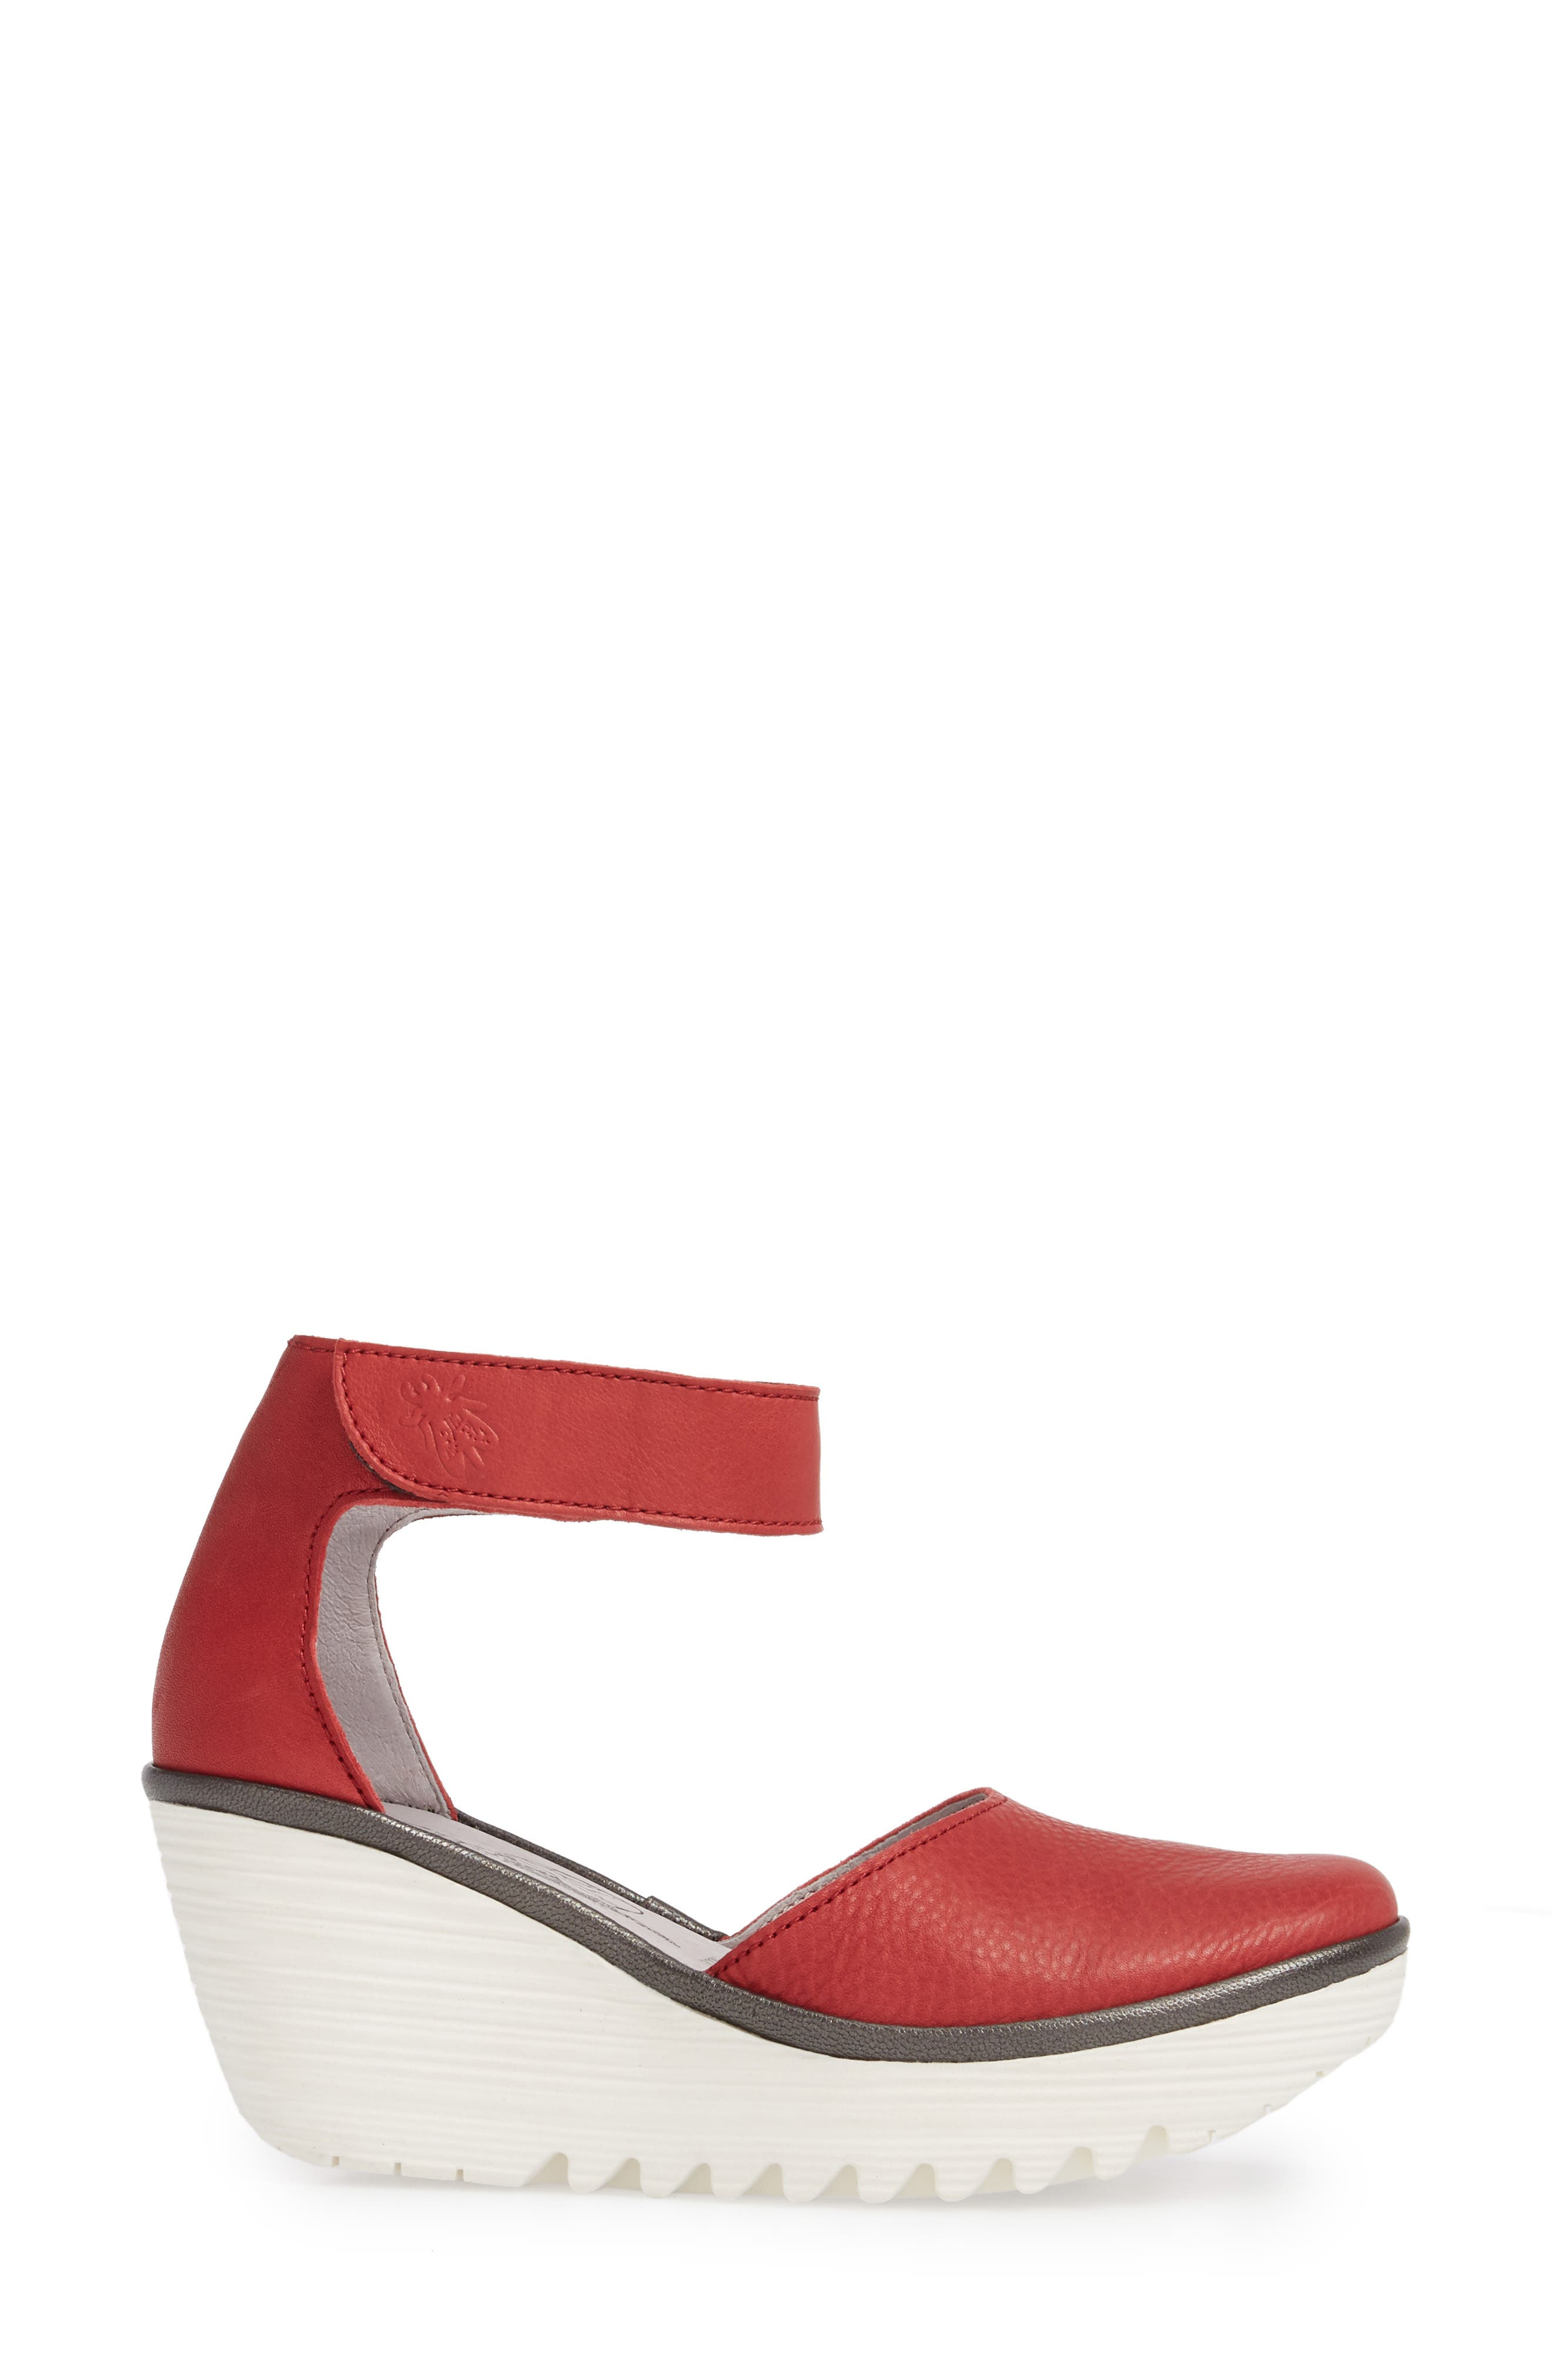 Yand Wedge Pump,                             Alternate thumbnail 3, color,                             RED/ OFF WHITE BRITO LEATHER